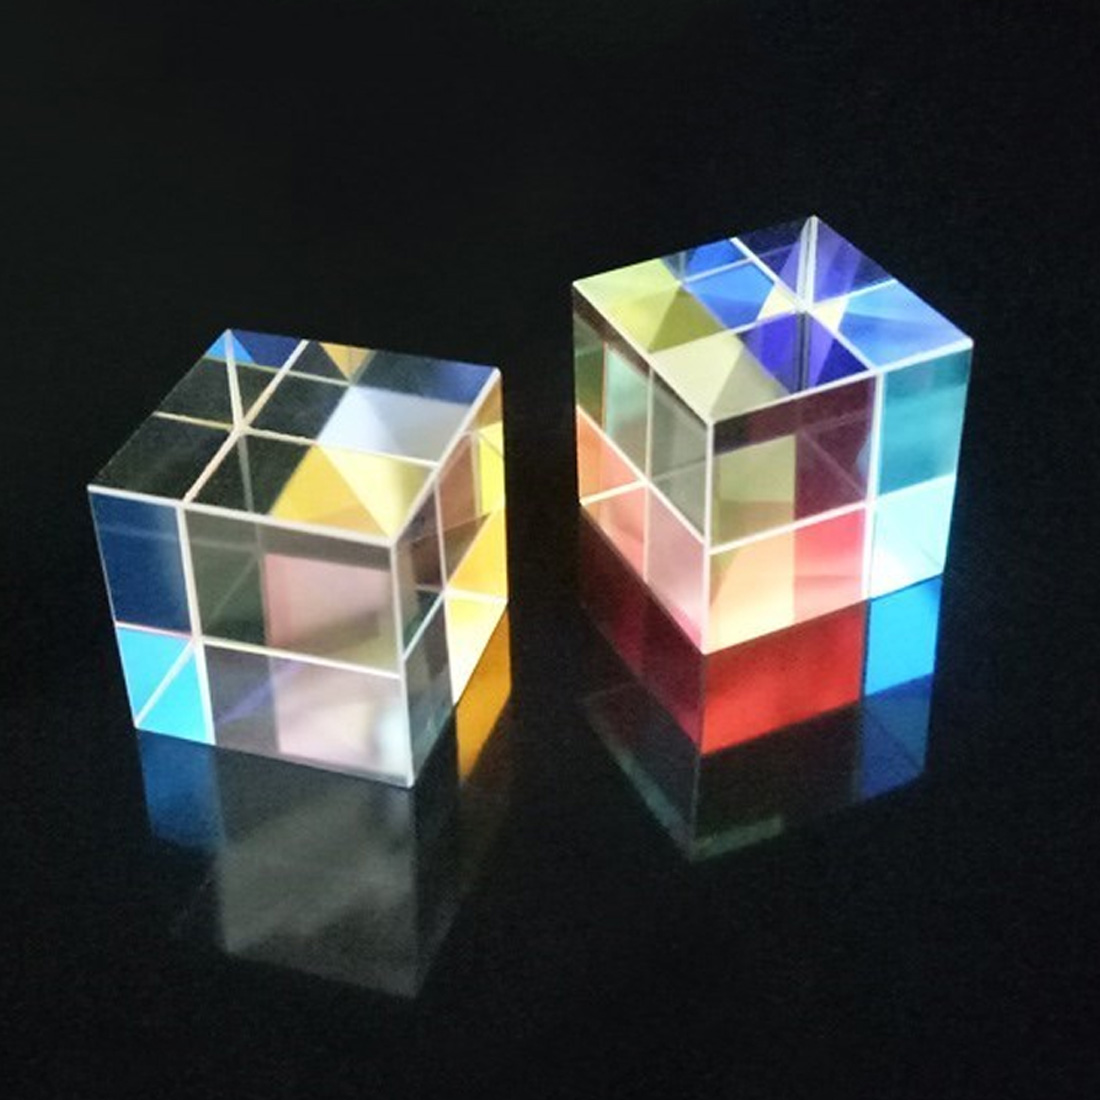 15*15*15MM Cube Prism Teaching Optical Glass Triple Physics Light Spectrum